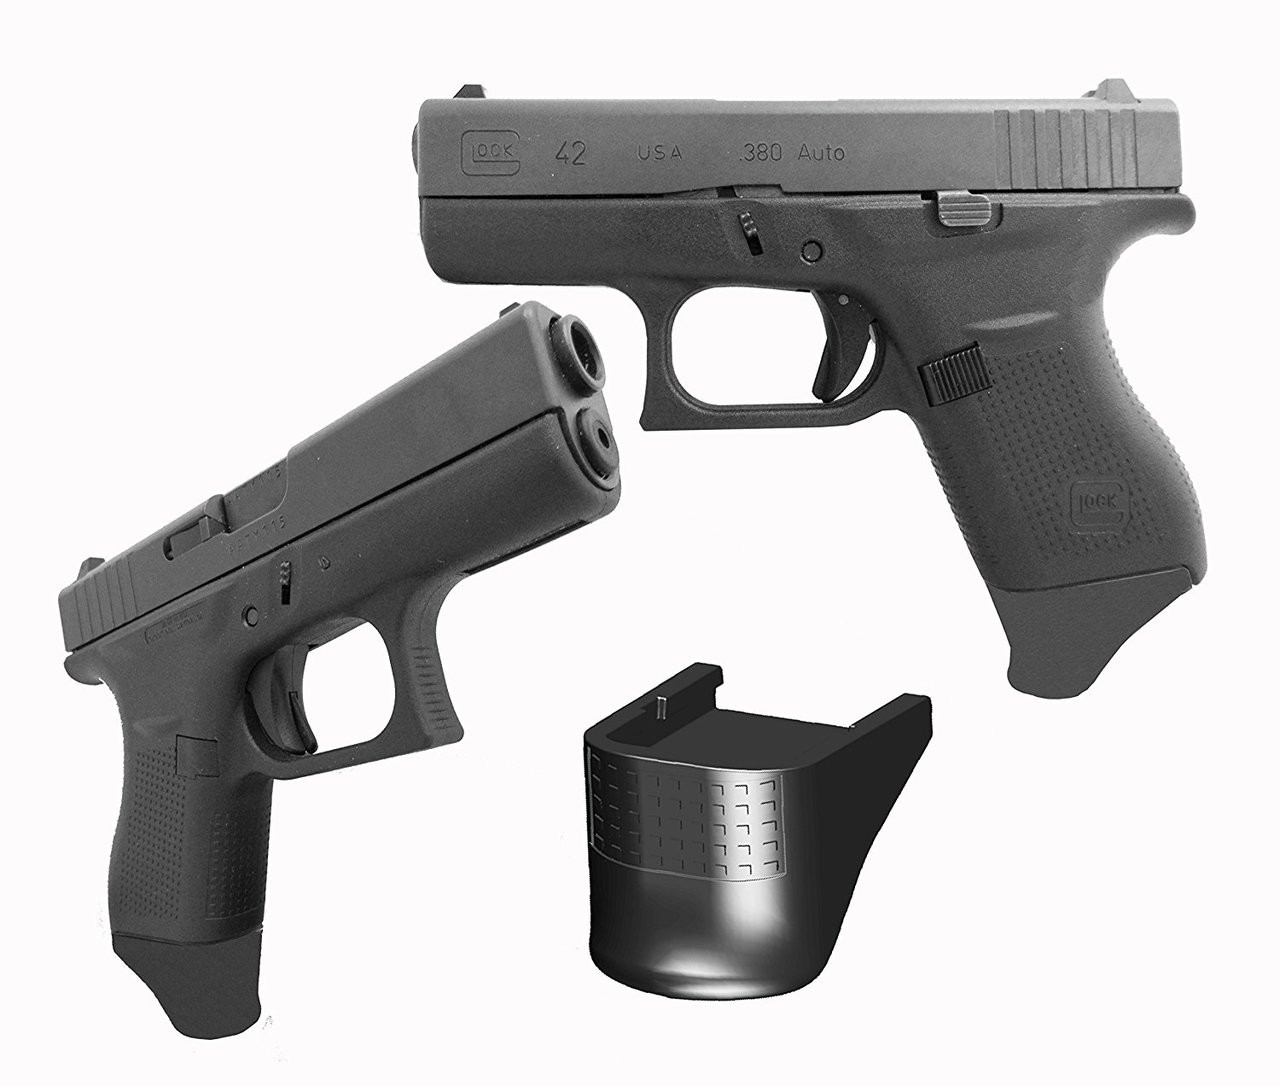 """.875"""" Grip Extension Extra Long Fits Glock 42 G42 380"""